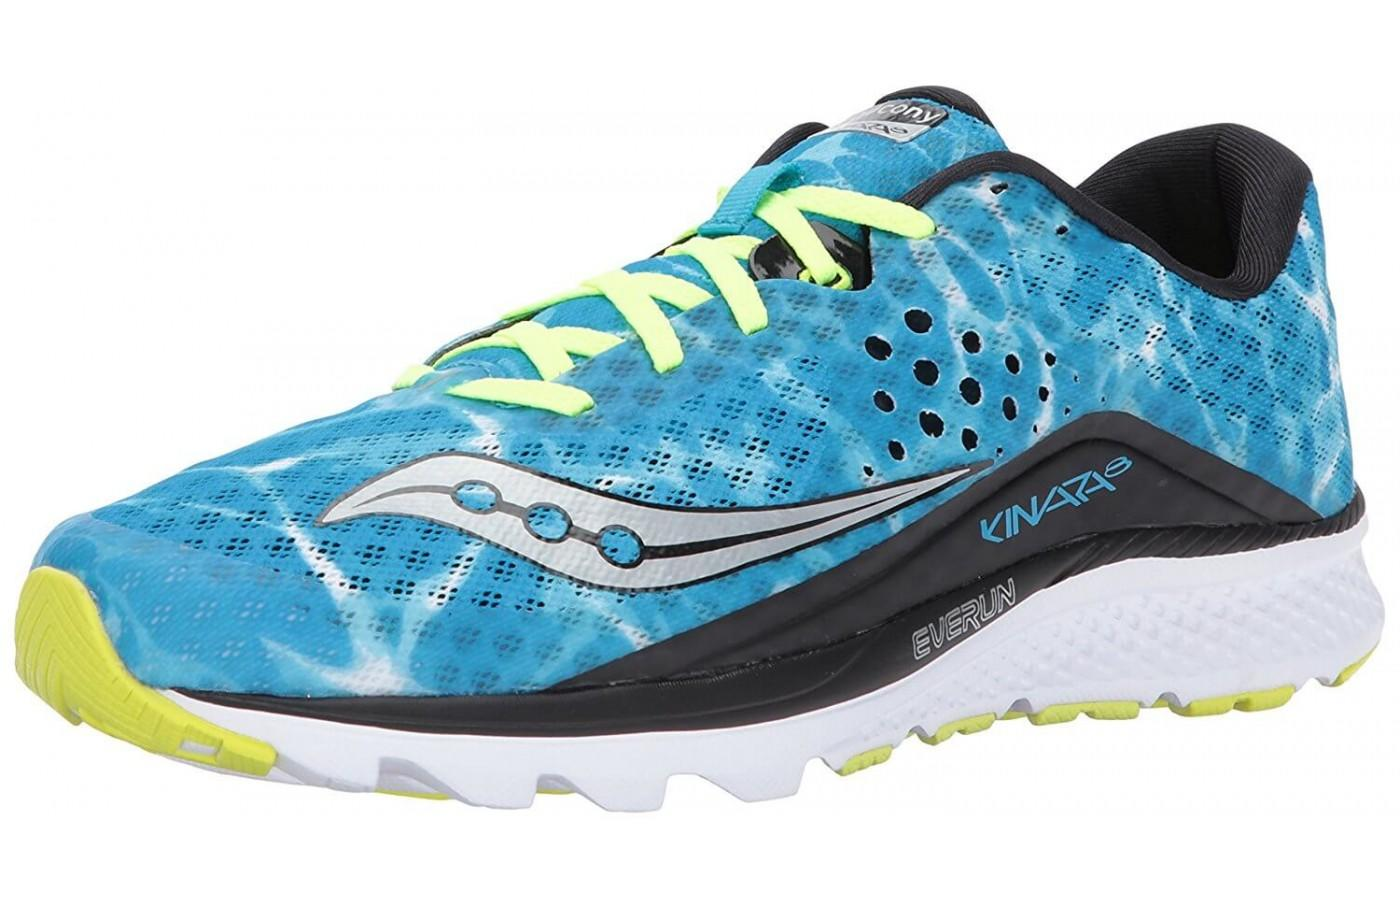 23671c45f1dc Saucony Kinvara 8 Reviewed - To Buy or Not in Apr 2019